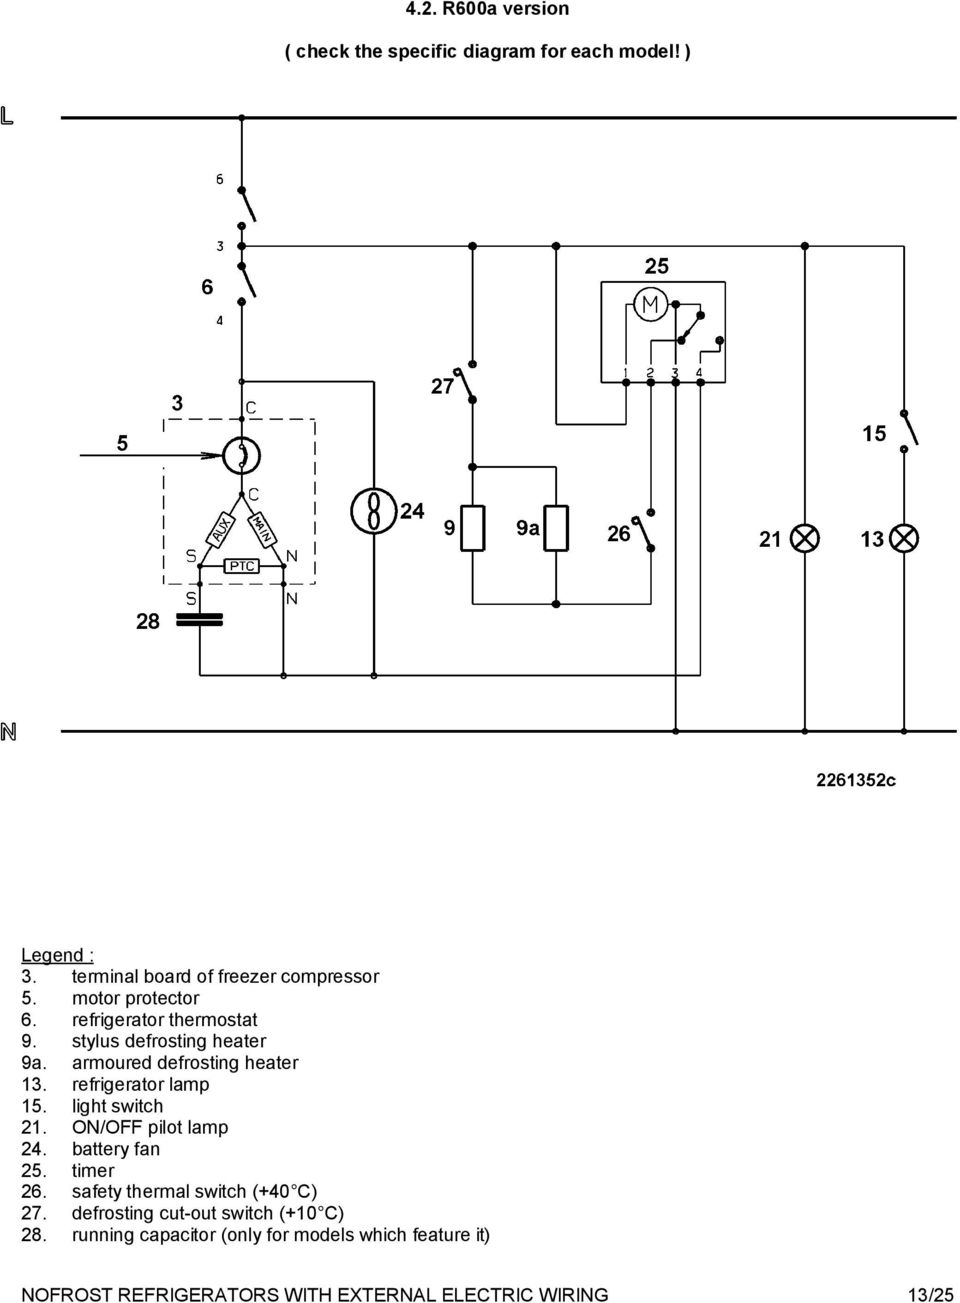 Service Manual Refrigeration Pdf Electric Fan Thermal Switch Wiring Diagram Refrigerator Lamp 15 Light 21 On Off Pilot 24 Battery